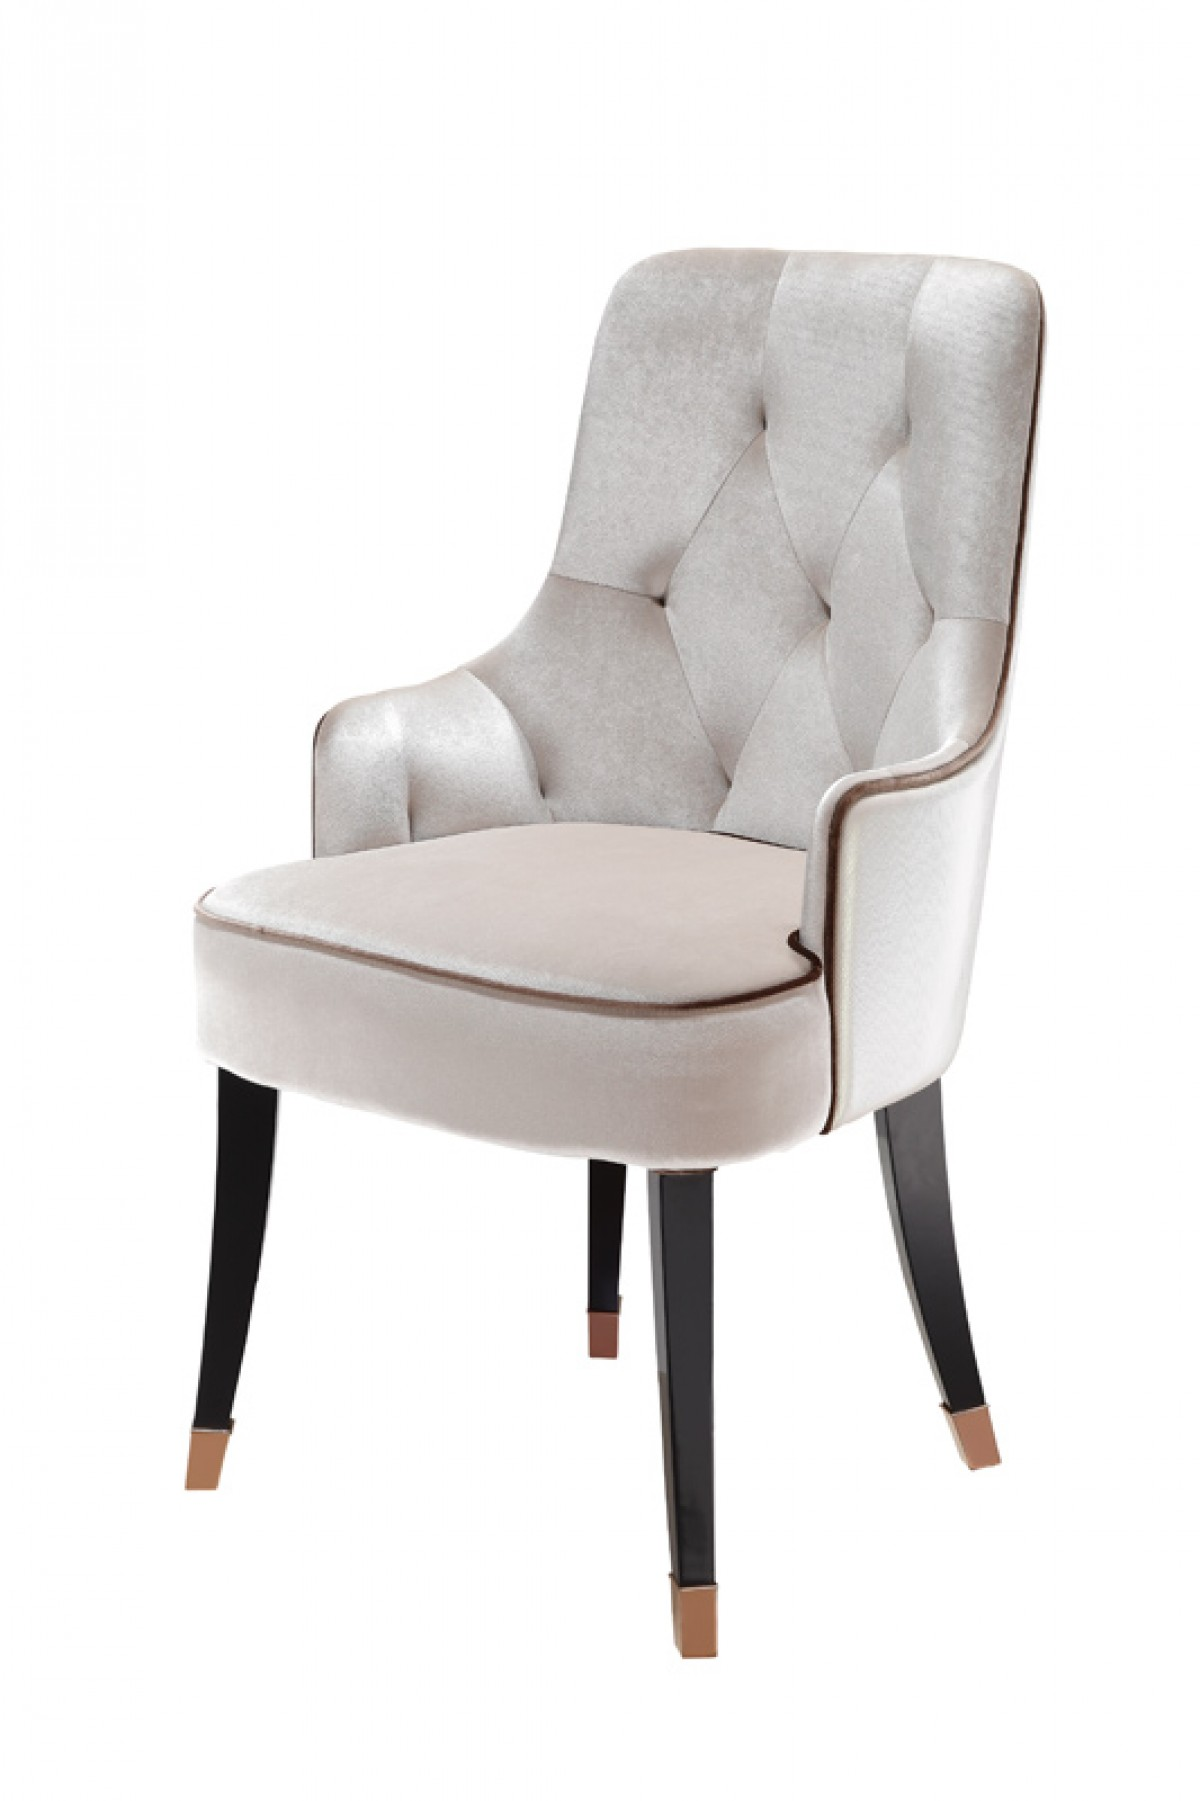 A x larissa modern white fabric dining chair for Contemporary white dining chairs